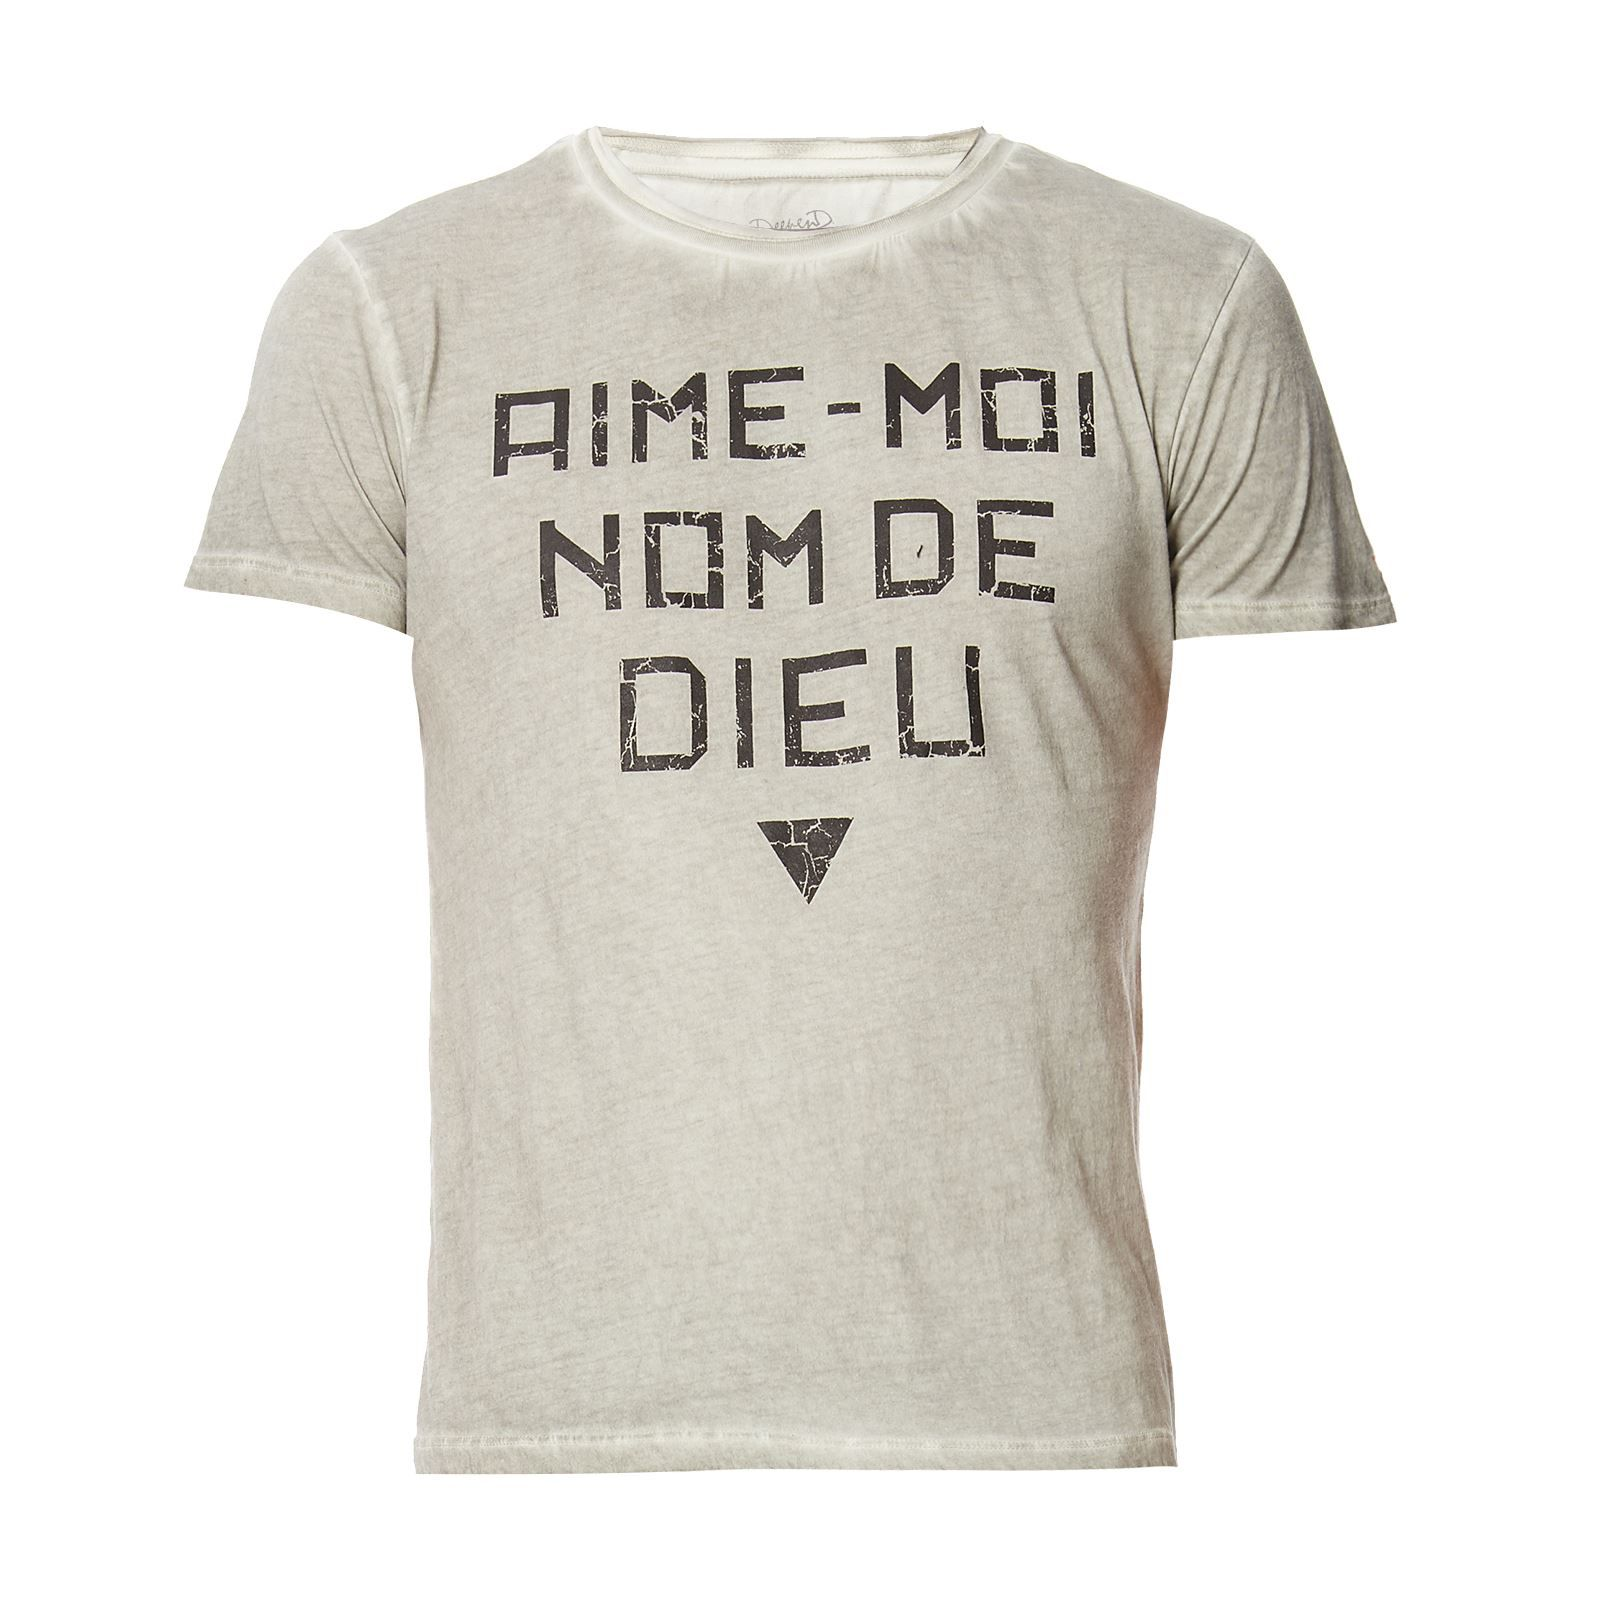 Deepend                        T-SHIRT MANCHES COURTES - PERLE